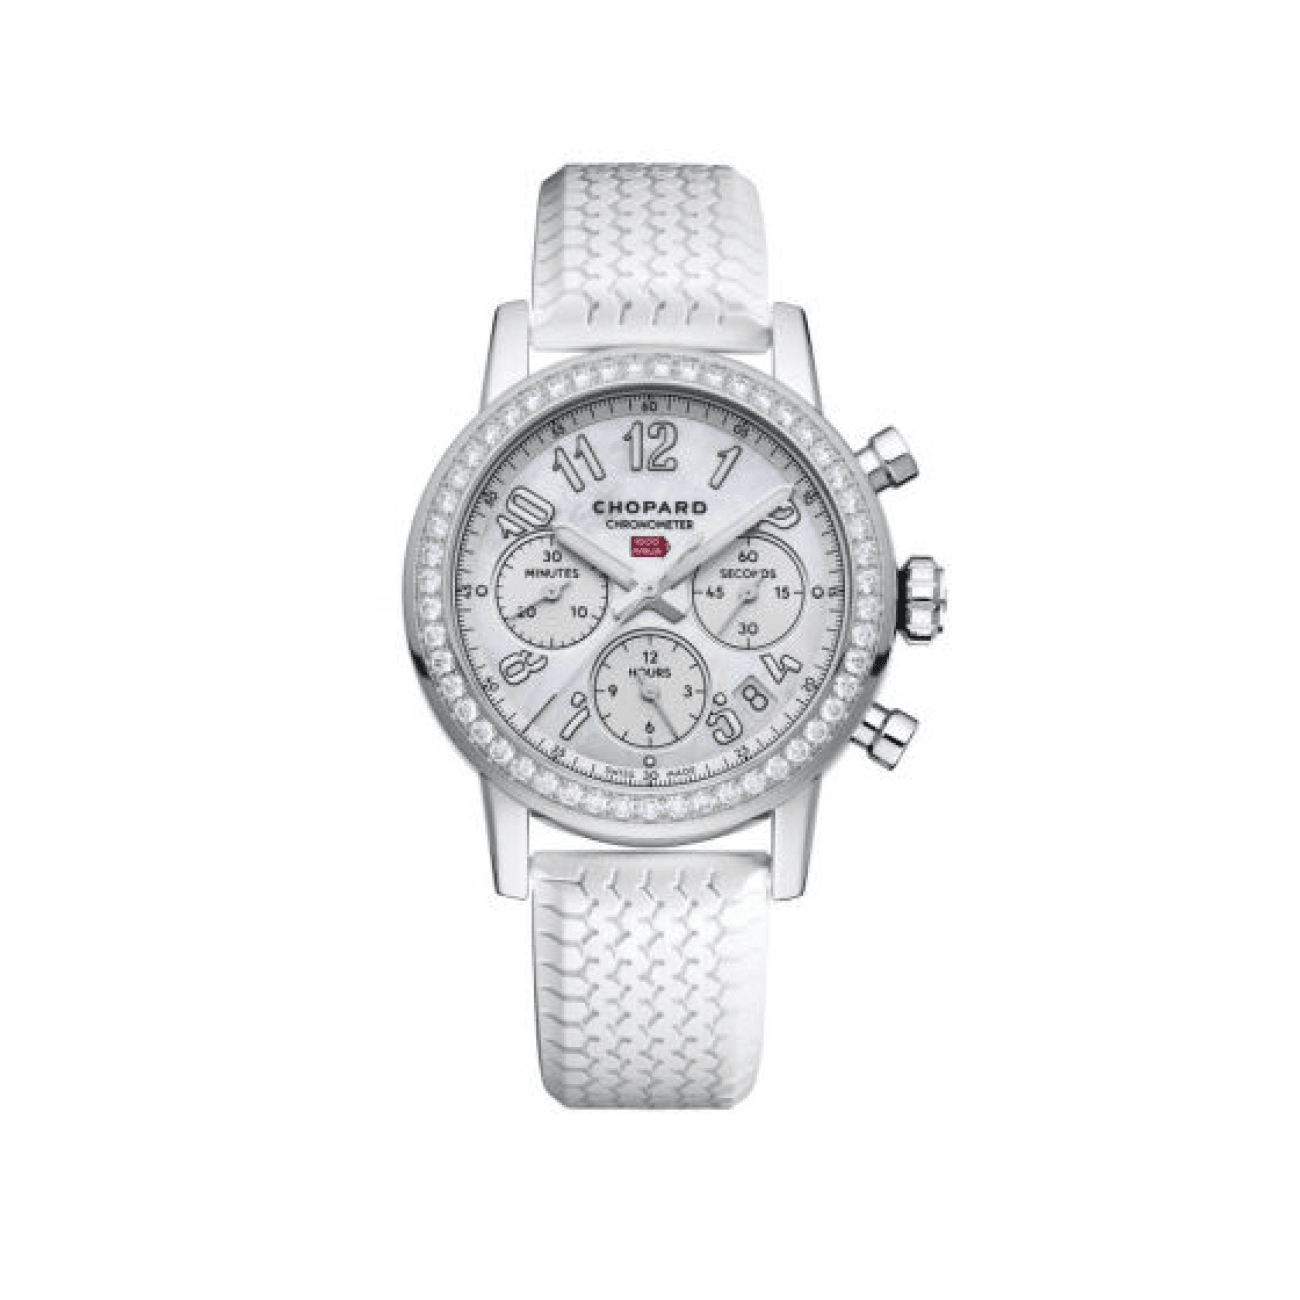 Chopard Watches - MILLE MIGLIA CLASSIC CHRONOGRAPH | Manfredi Jewels